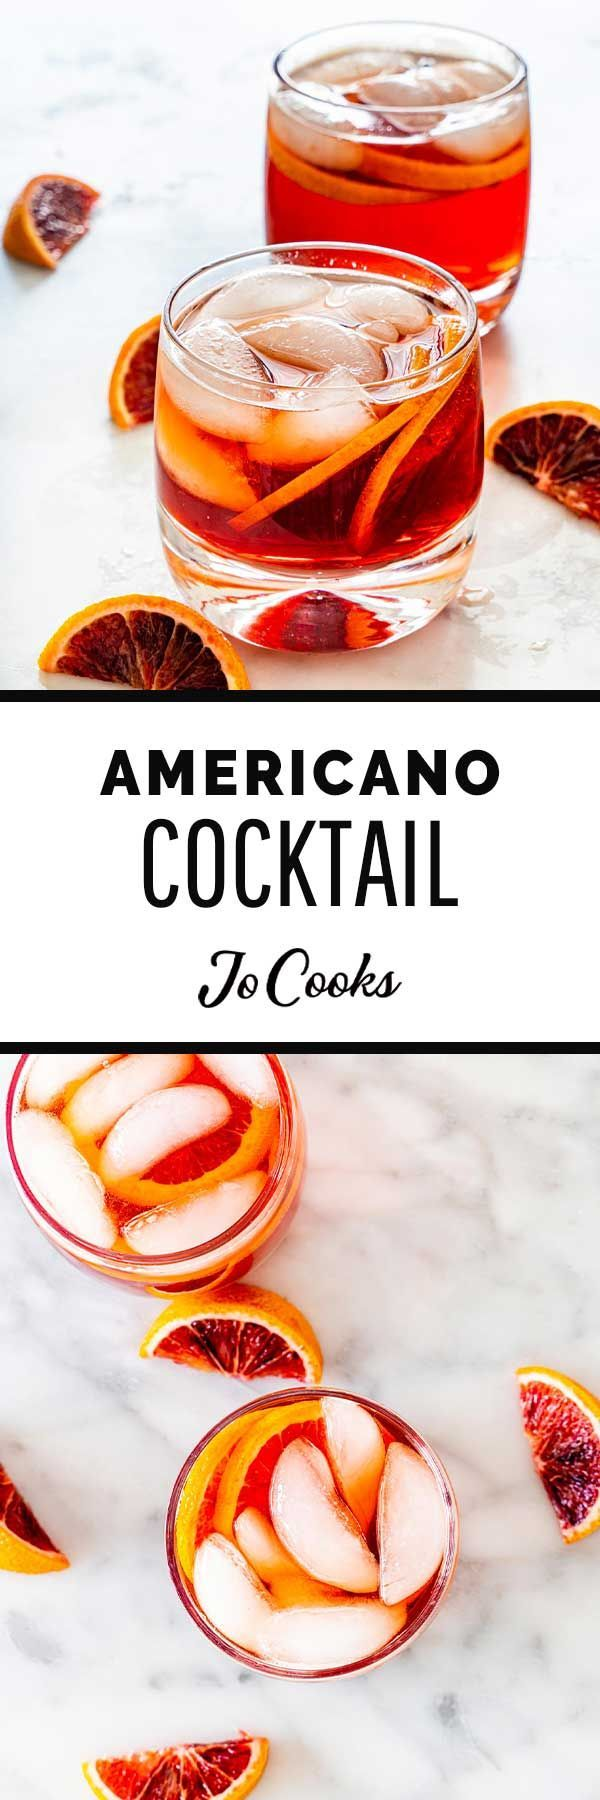 Americano Cocktail In 2020 Campari And Soda Vodka Cranberry Cocktail Cocktails